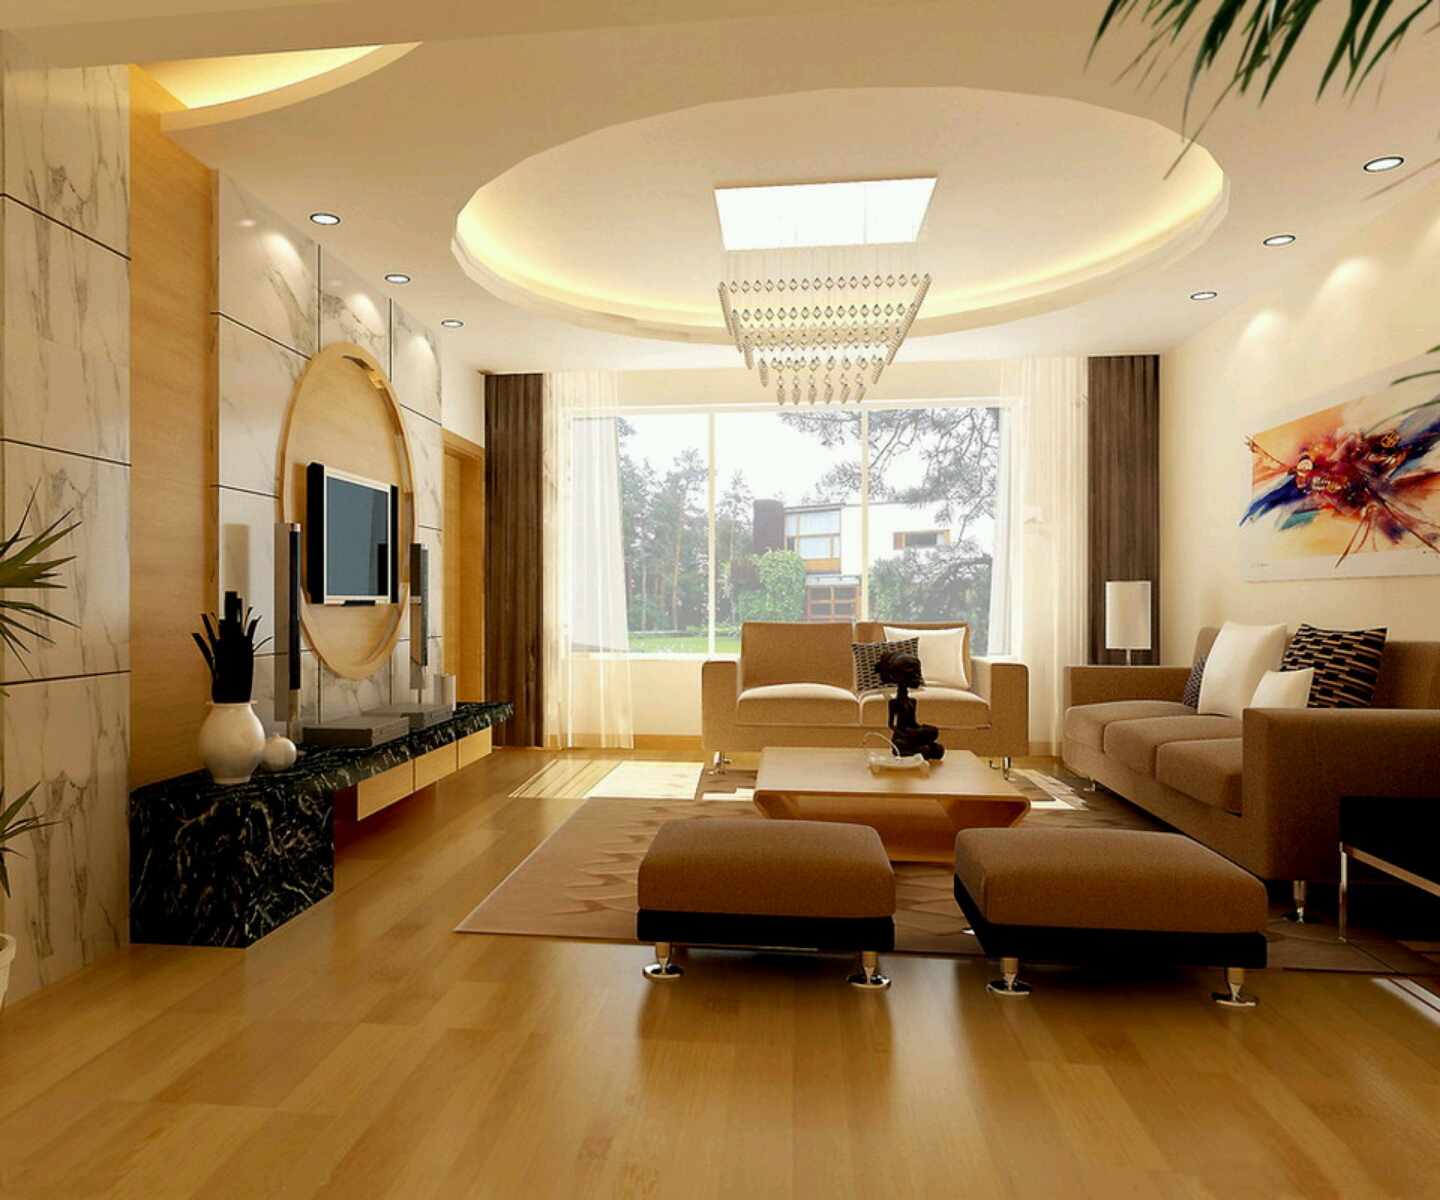 New home designs latest modern interior decoration for House sitting room designs